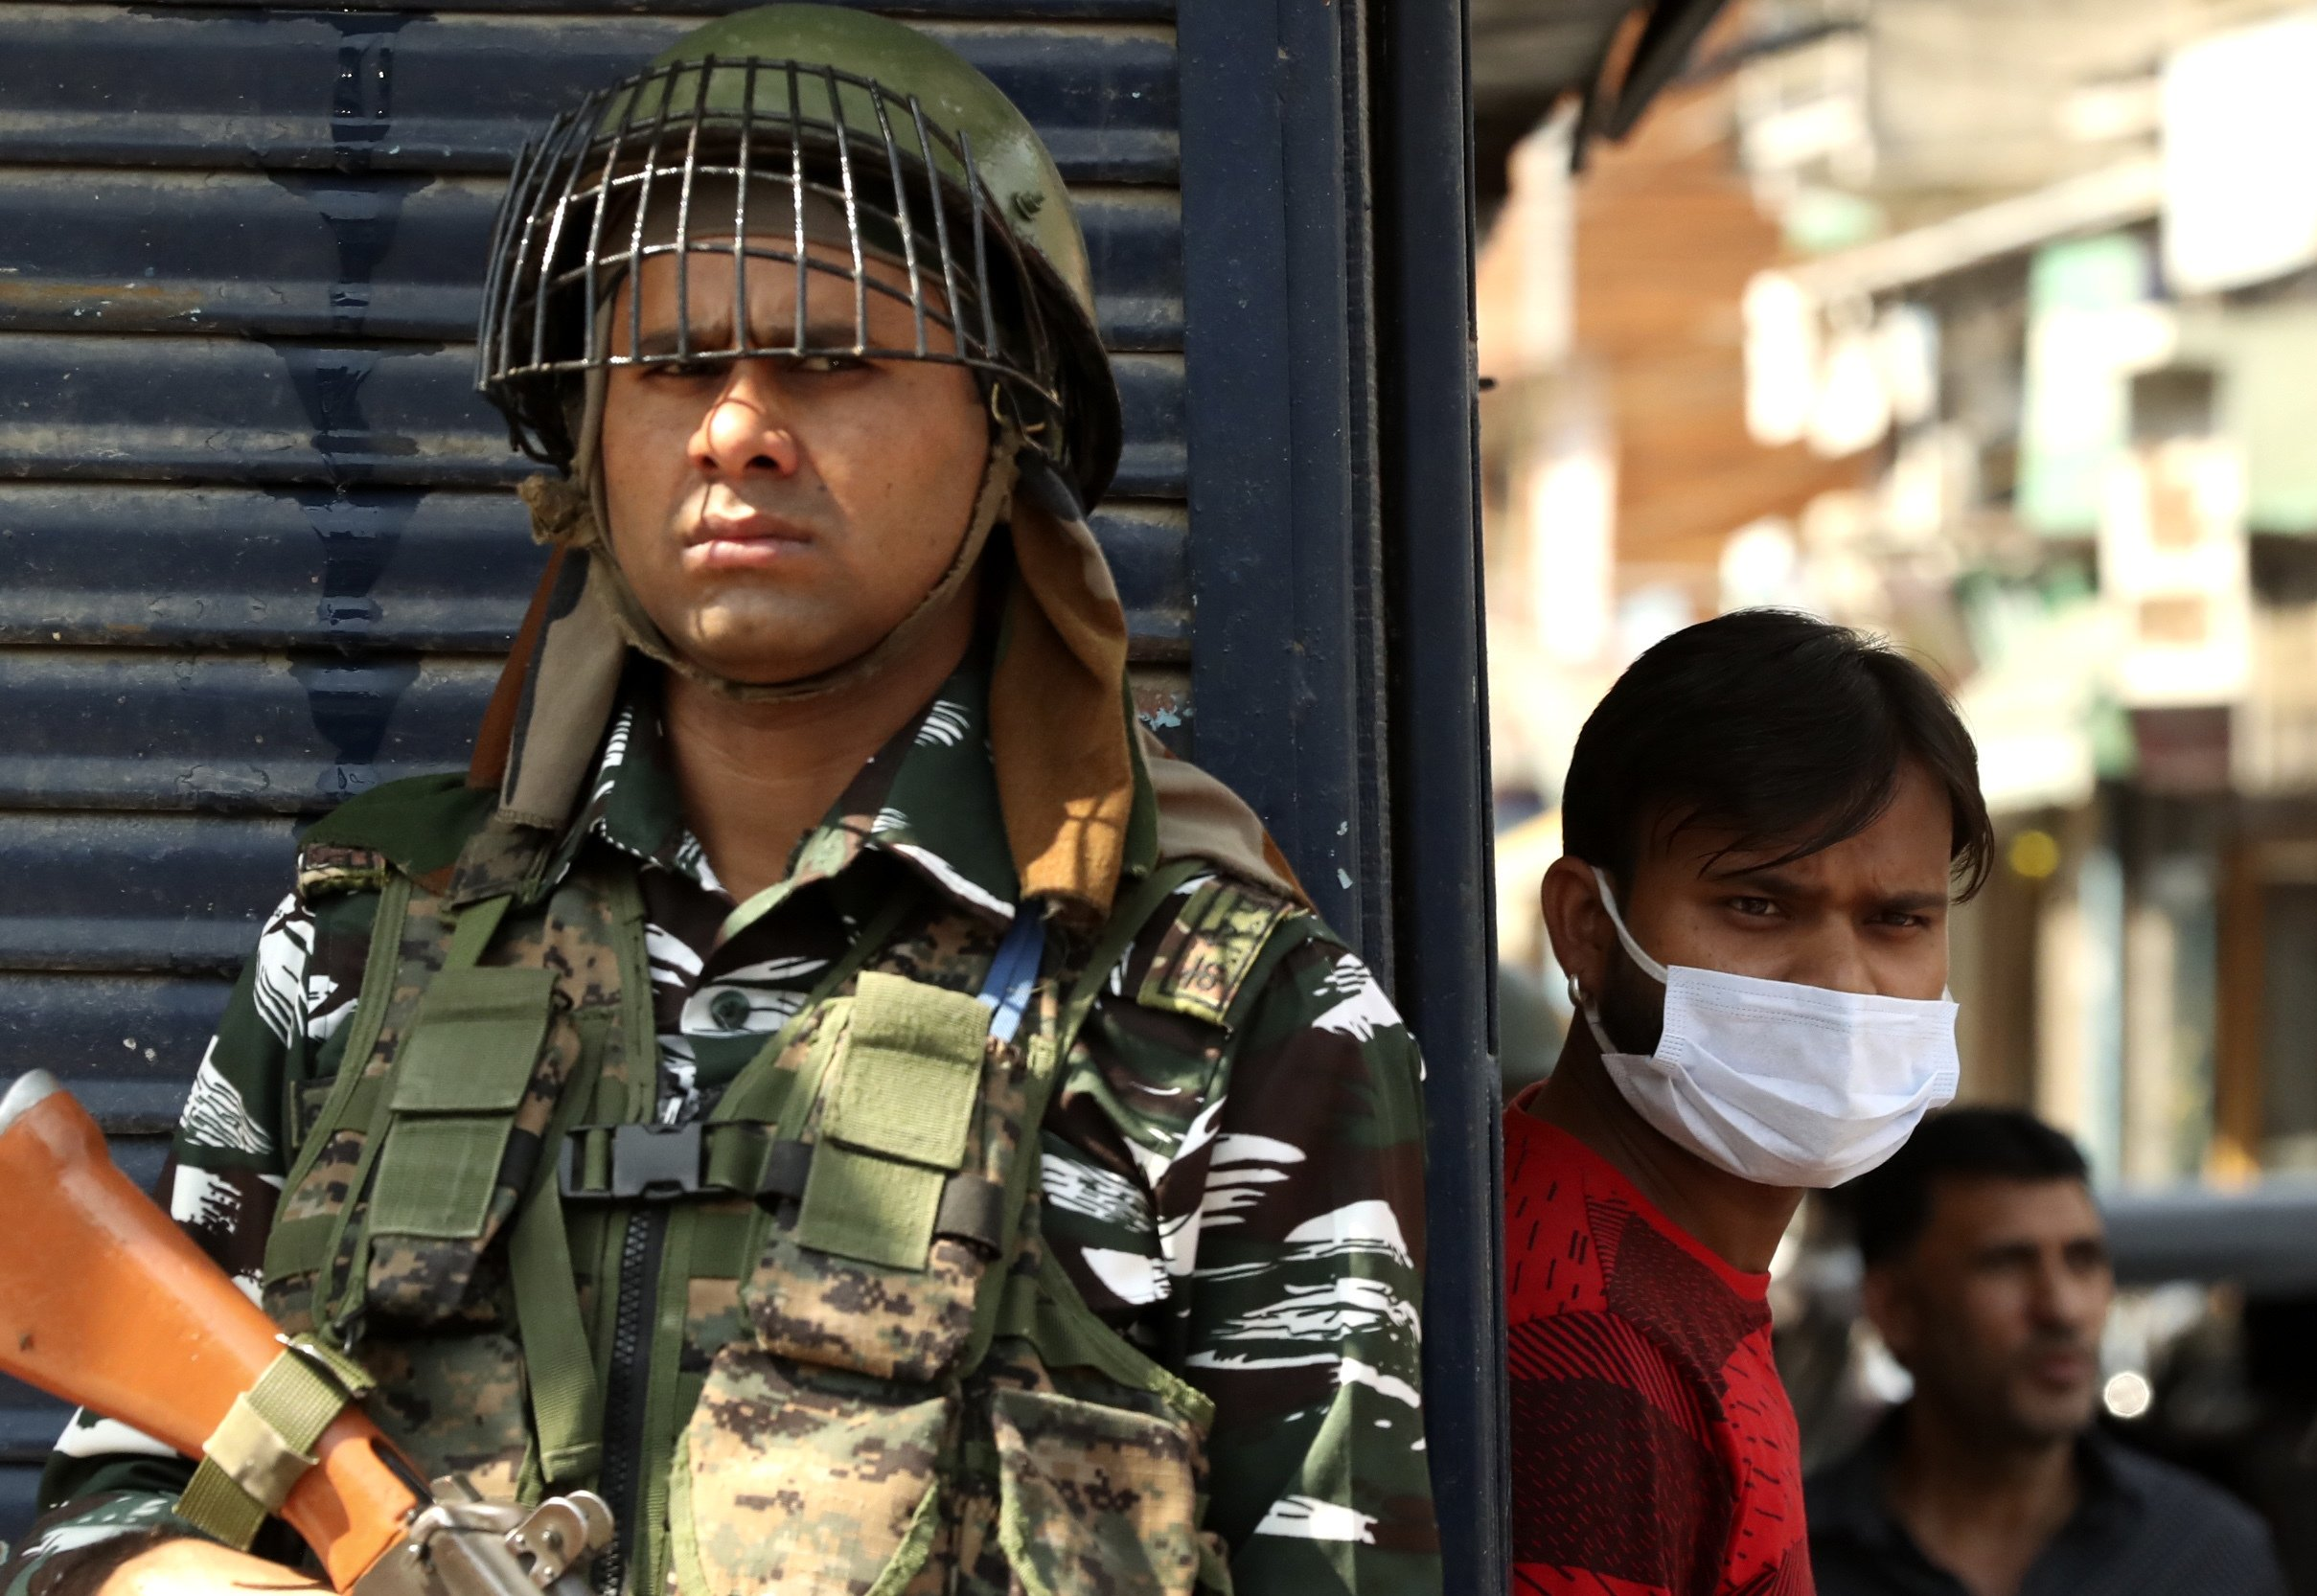 An Indian paramilitary soldier keeps guard near the site of a grenade attack at a busy market in Srinagar, Indian controlled Kashmir, Tuesday, Aug. 10, 2021. (AP Photo)